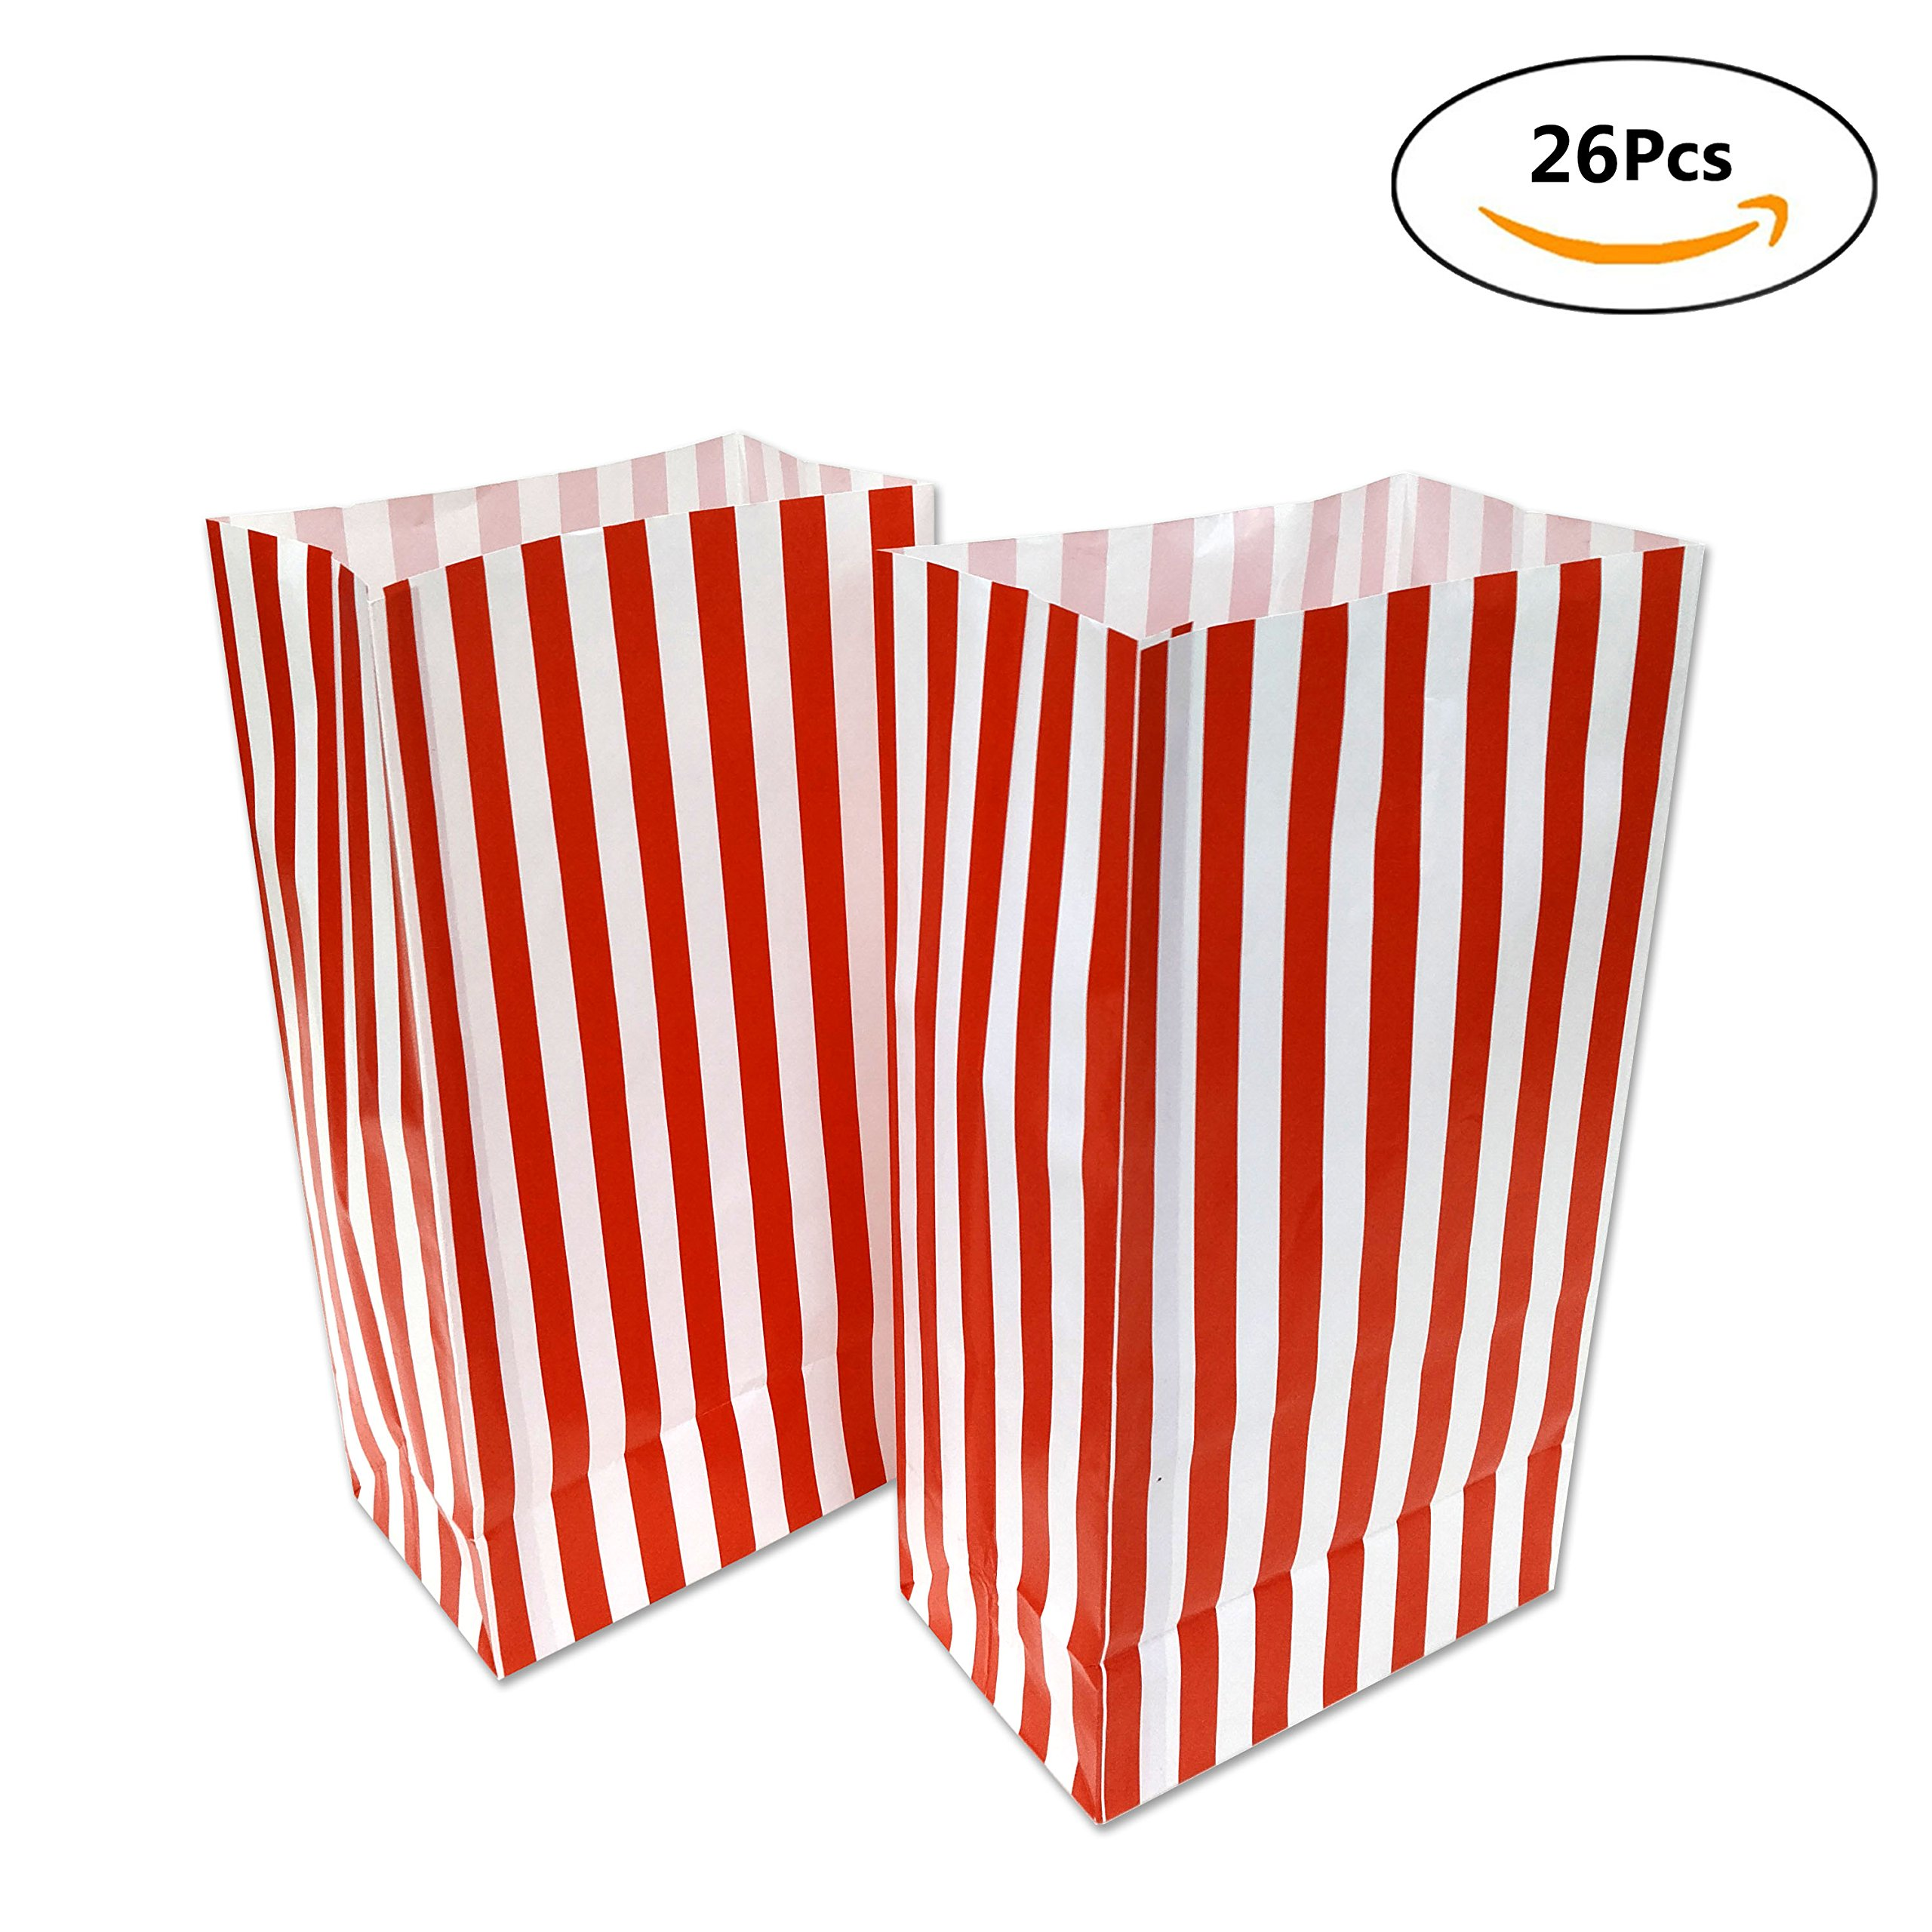 Popcorn Paper Bags for Kids - 26 Pack Red Stripe Party Bags for Filmfest Party, Birthday Party, Red Style , 10 x 5.25 x 3.25 inches by WEEPA by WEEPA